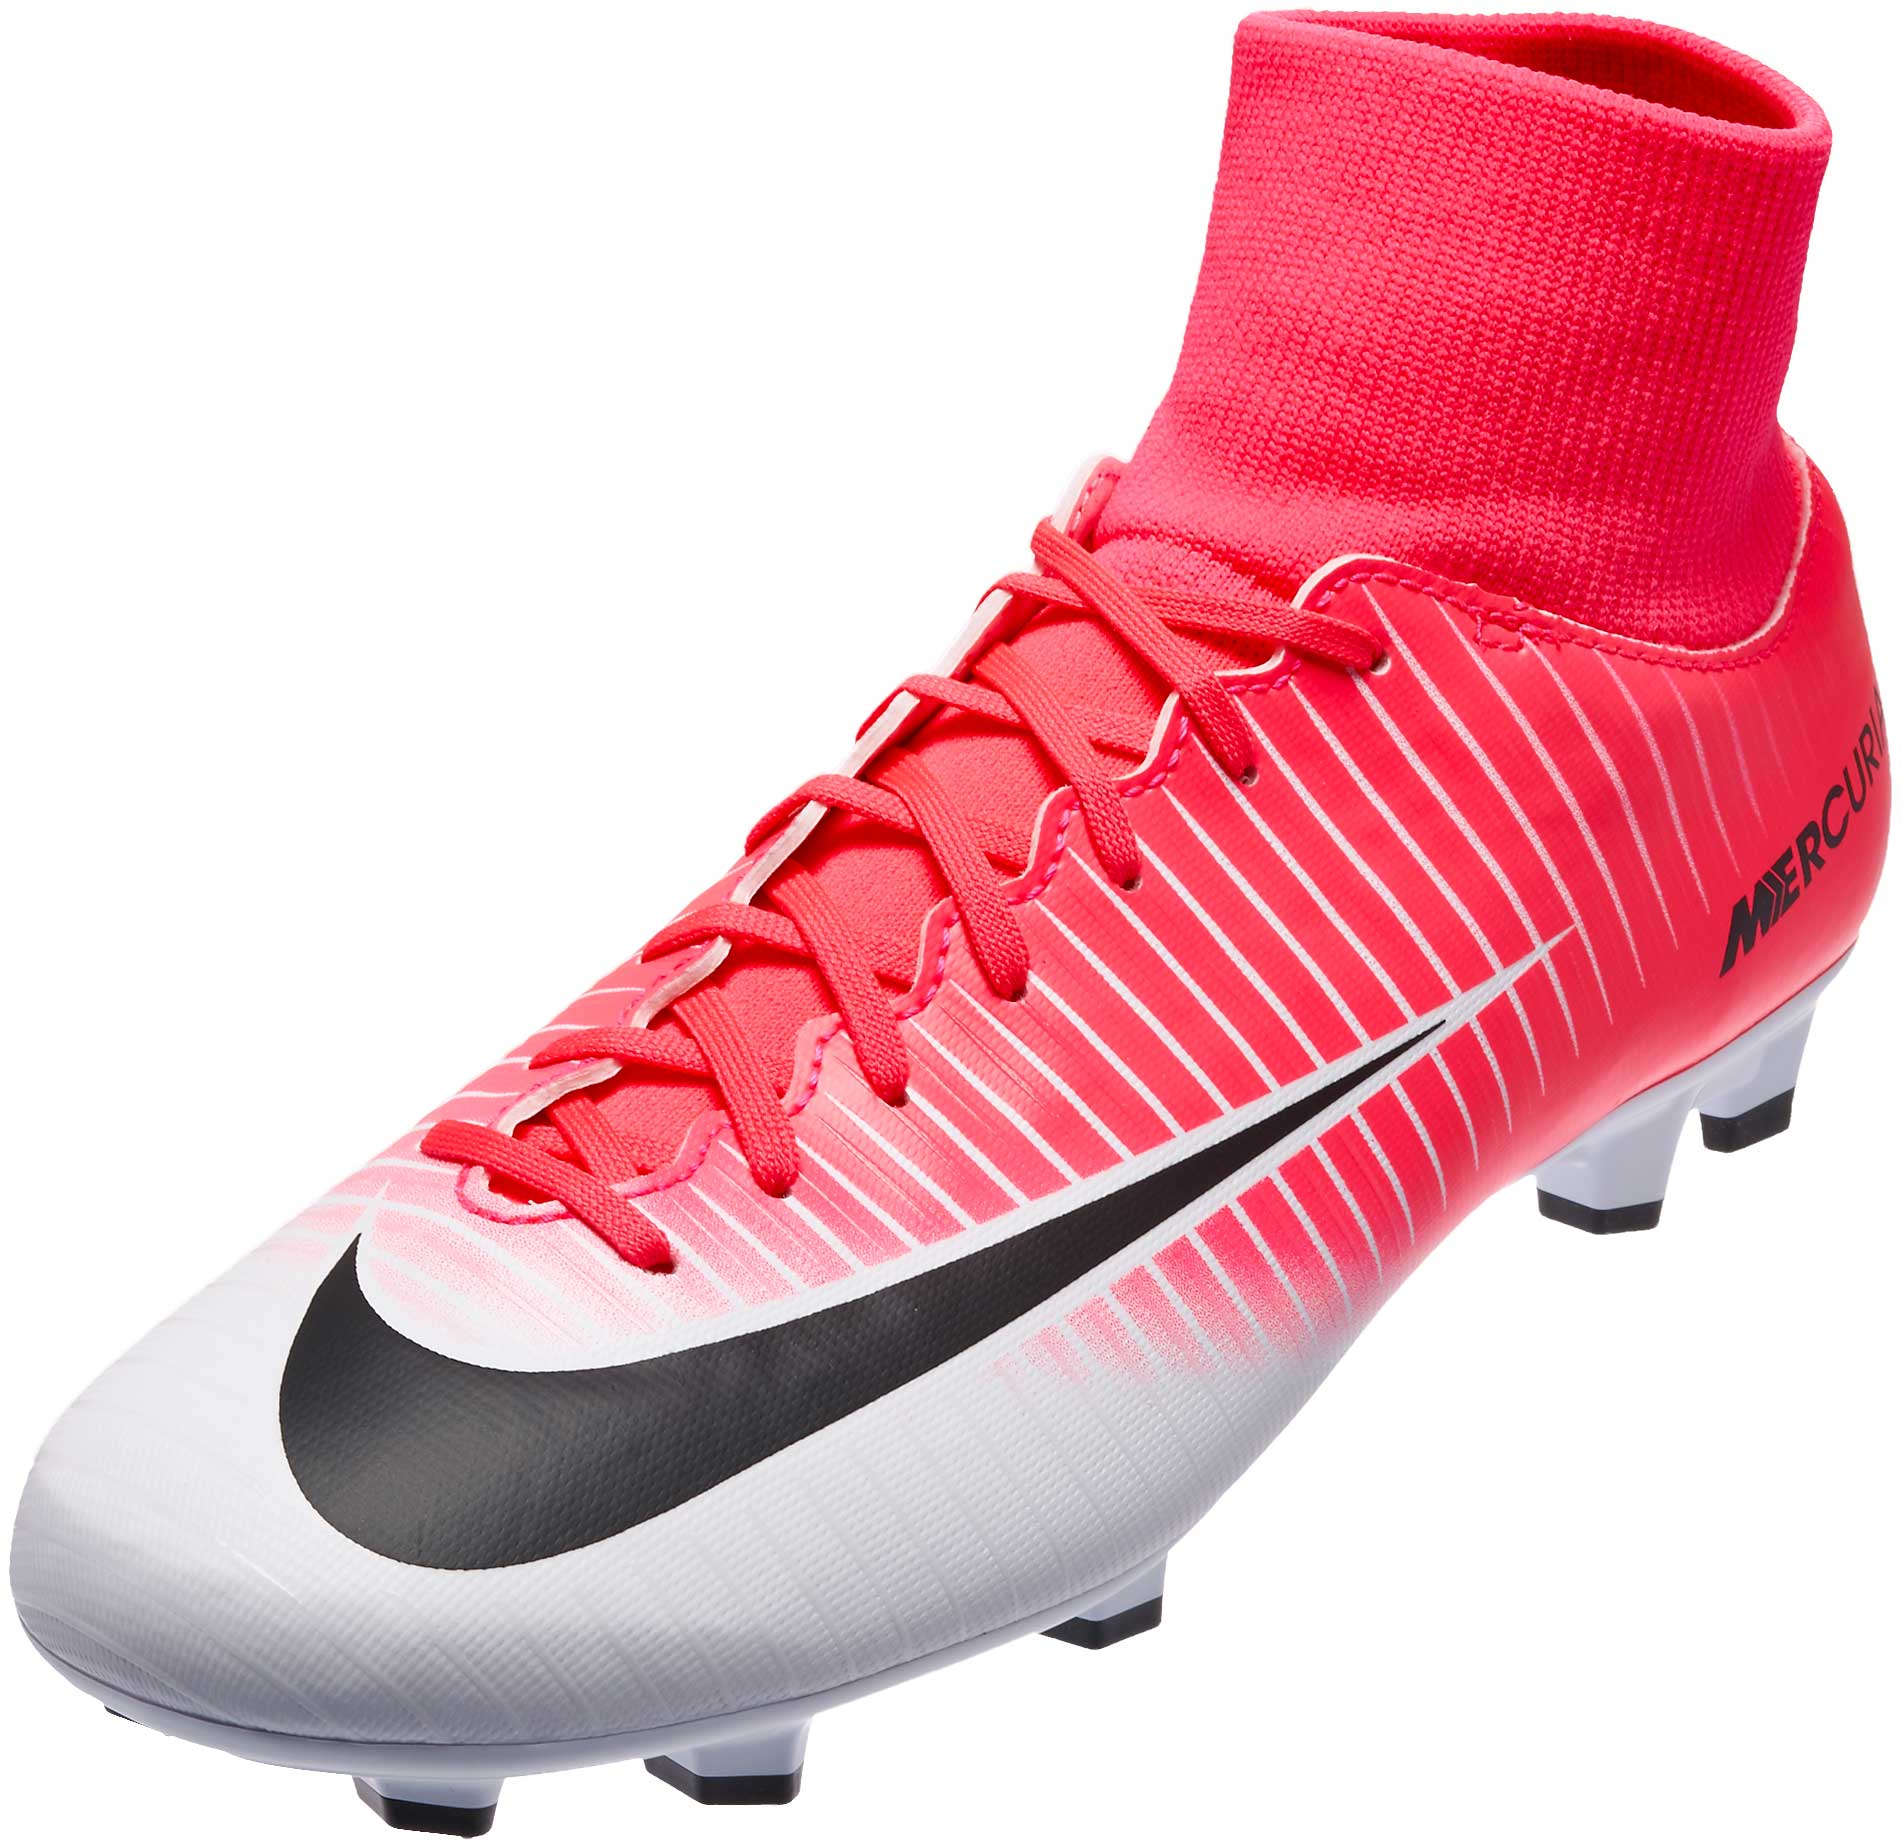 limited guantity official images 50% price Nike Mercurial Victory VI DF FG Soccer Cleats - Racer Pink ...